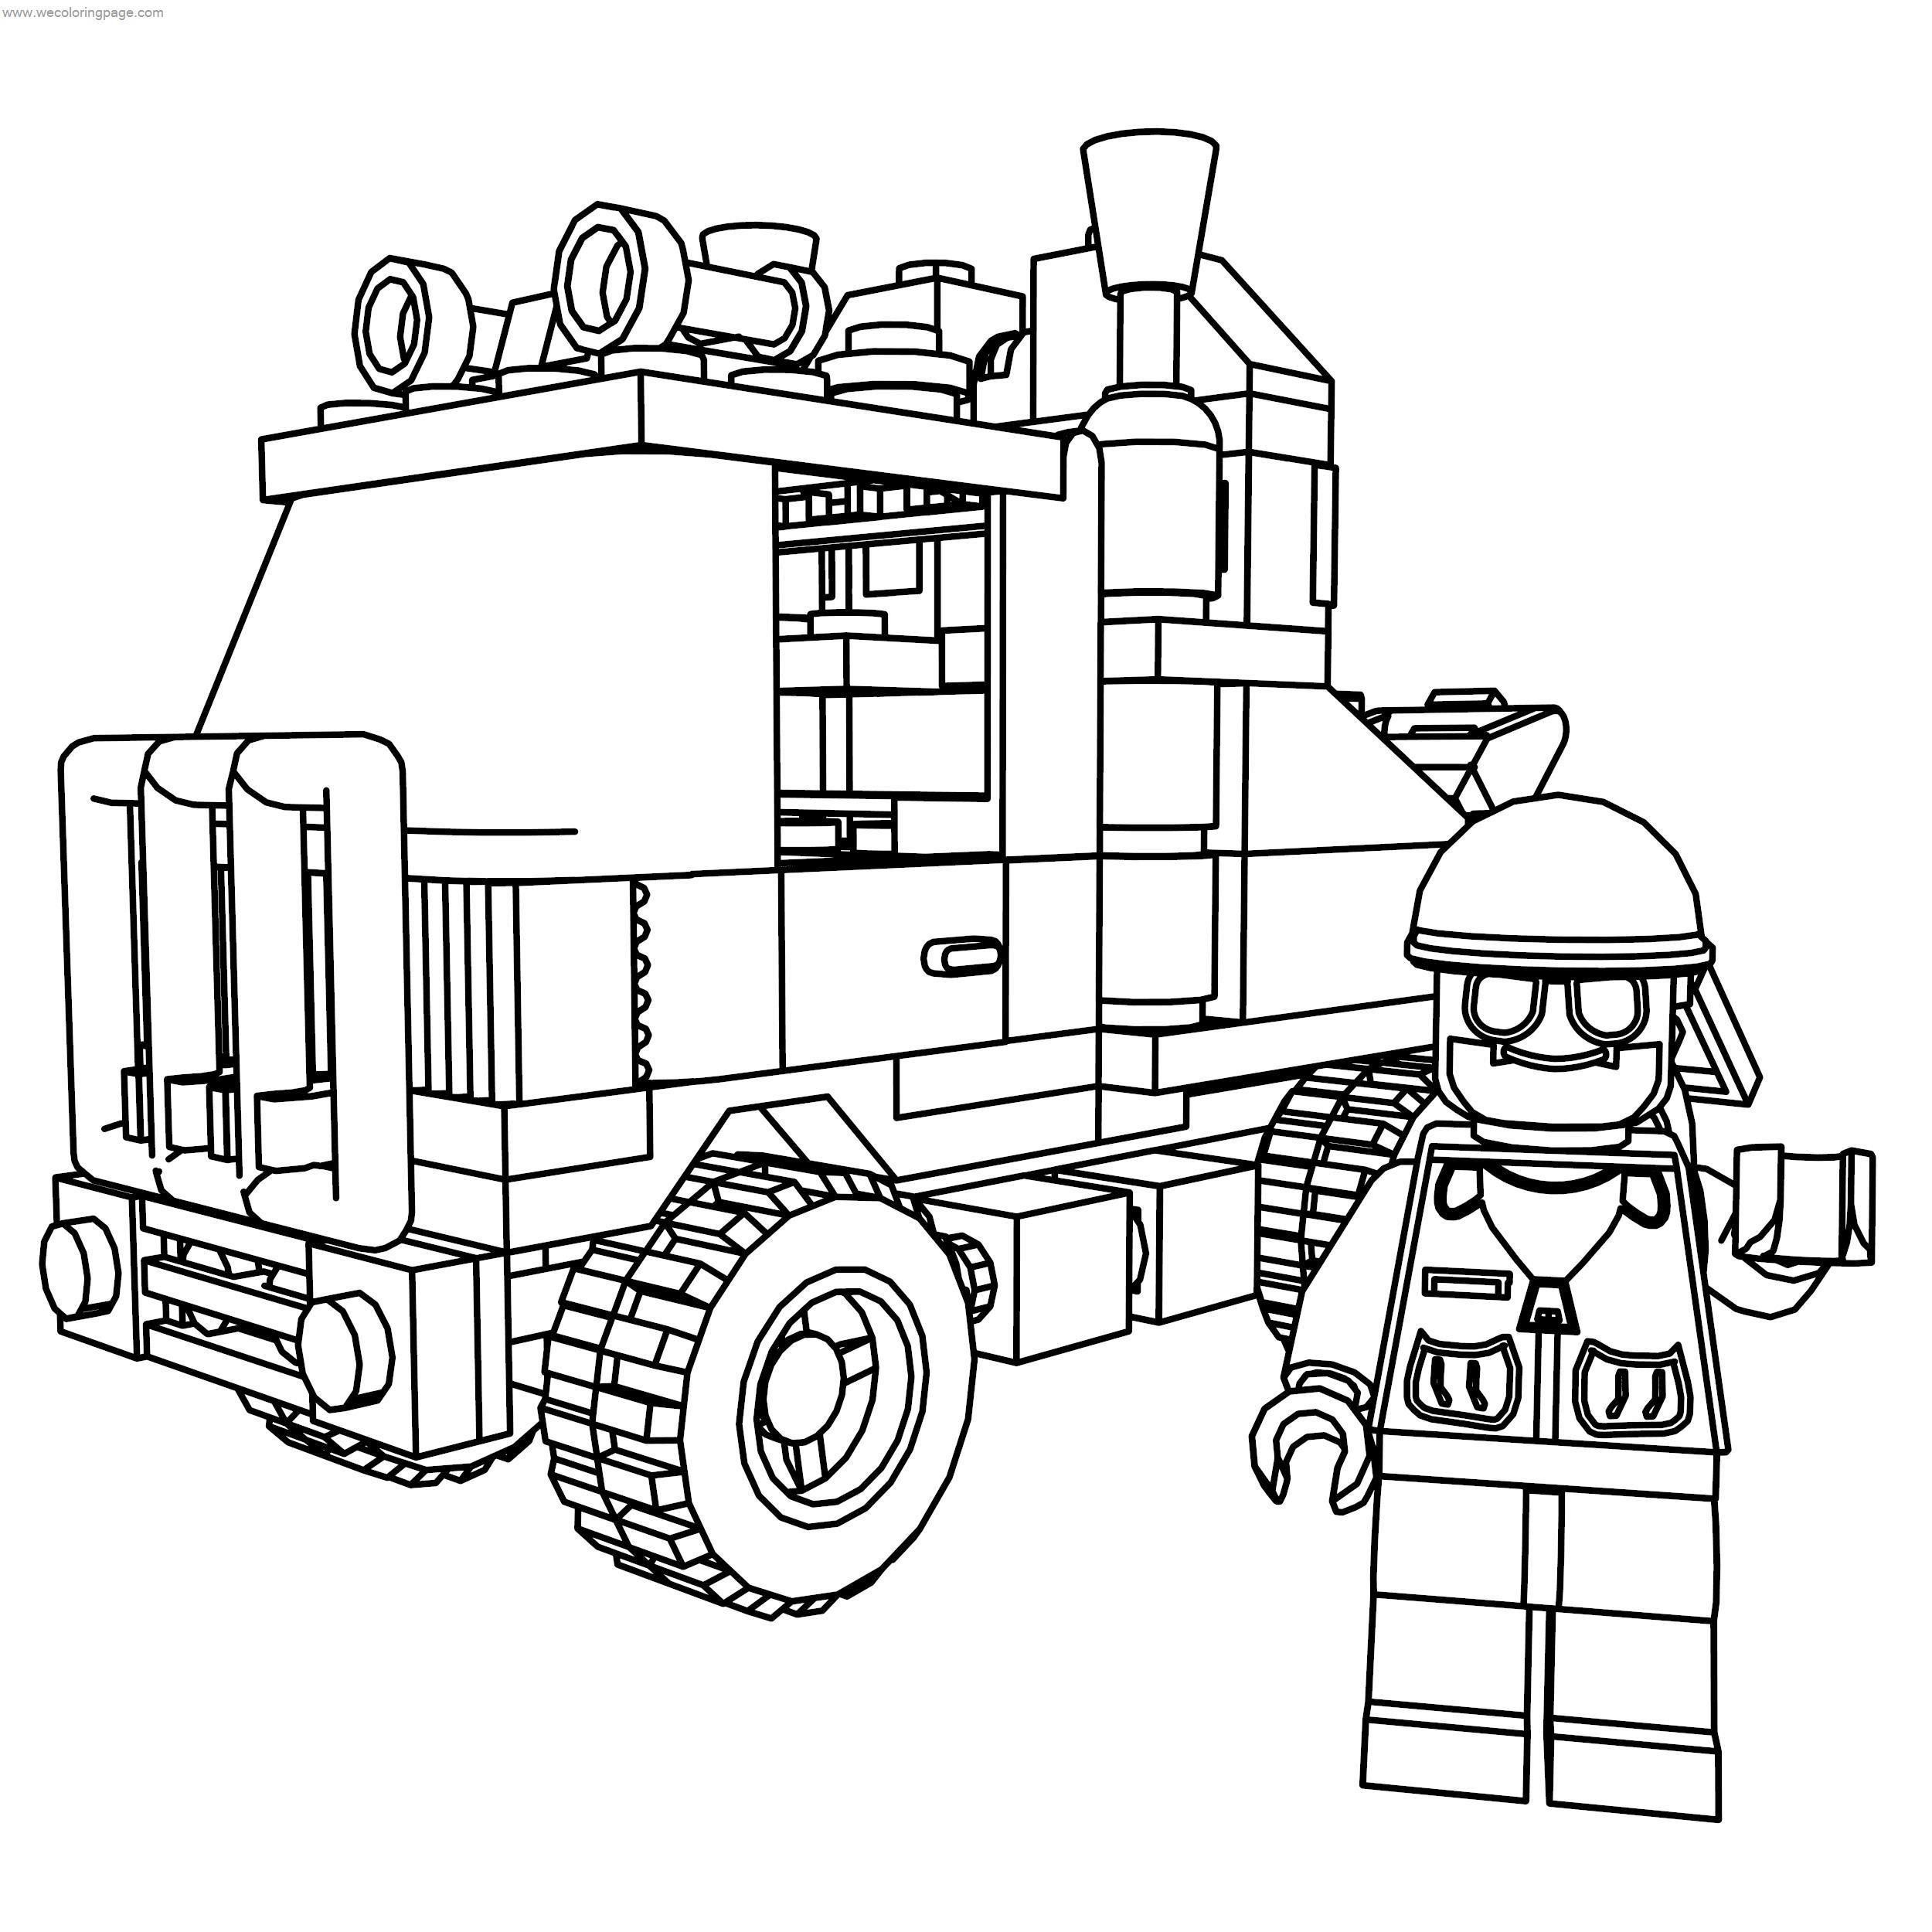 lego truck coloring pages lego fire truck coloring page firefighter fun pinterest truck lego coloring pages